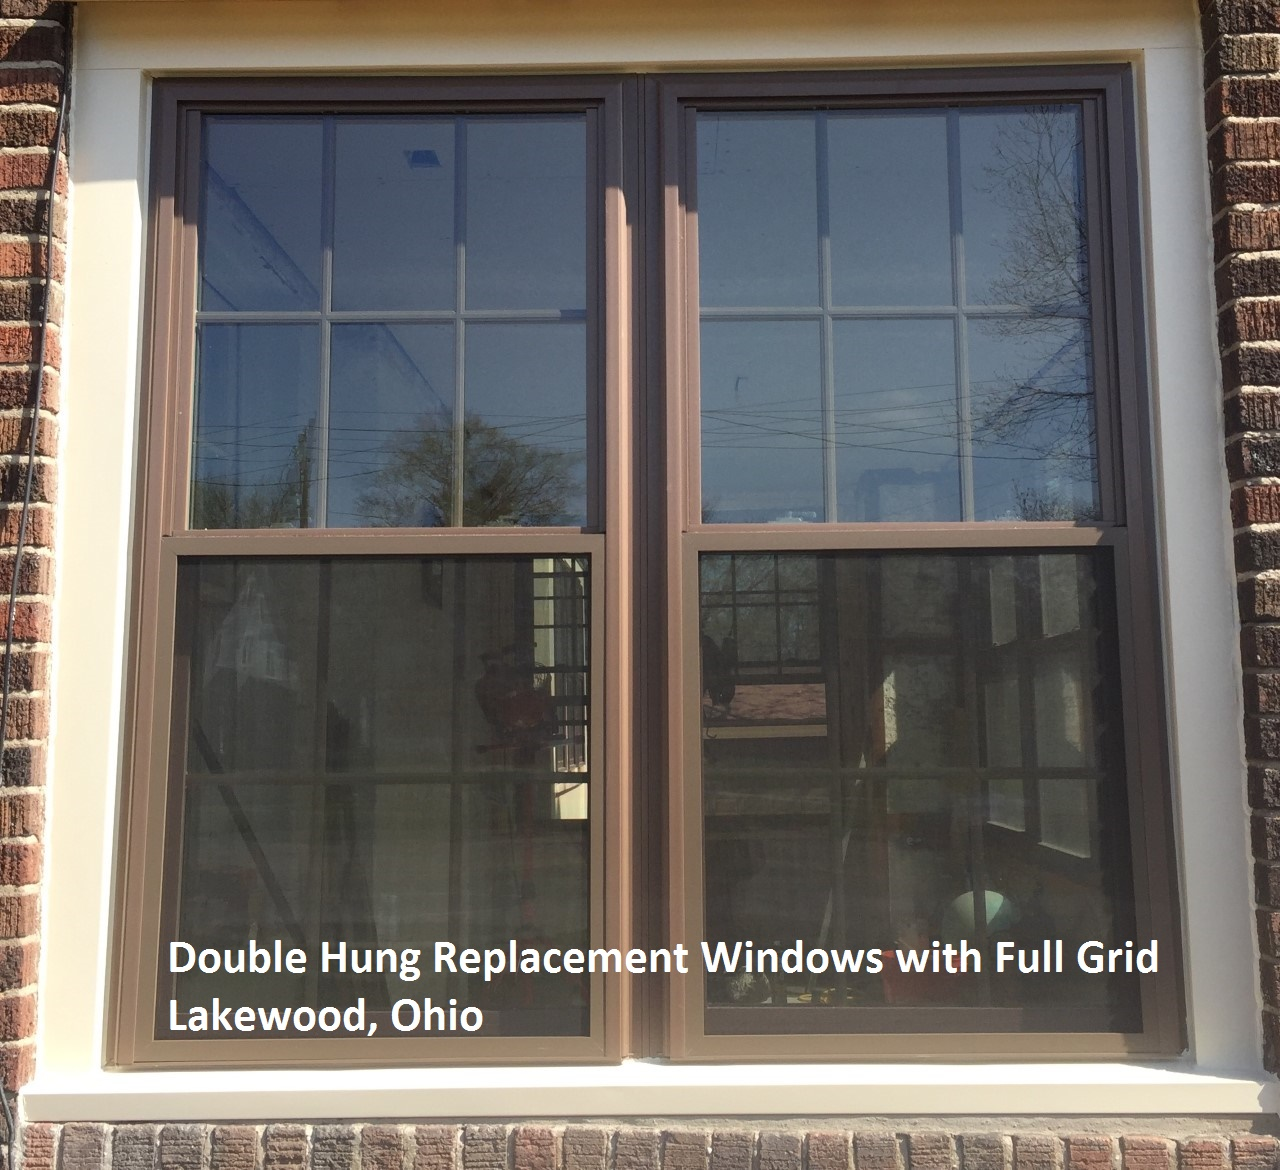 Lakewood window company near me